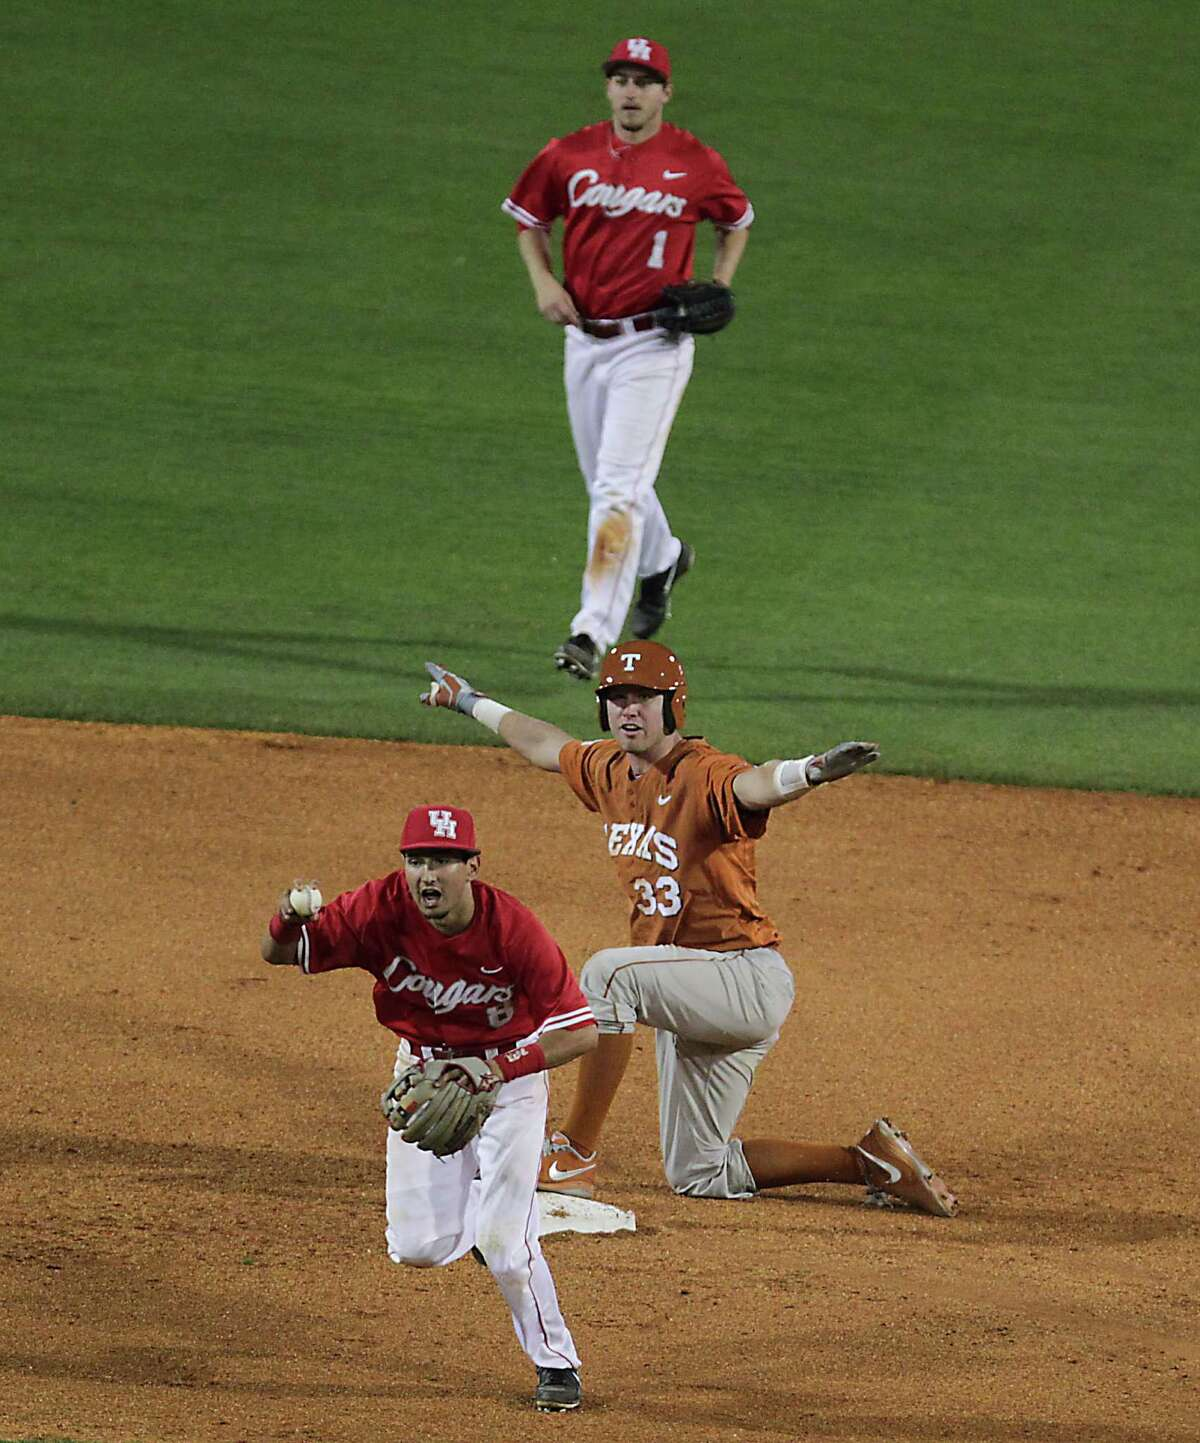 In this March 19, 2013 photo, the University of Houston's Josh Vidales bottom, signals to an official as the University of Texas' Jeremy Montalbano middle motions he is safe as U of H's Landon Appling top, looks on during the sixth inning of college baseball game action at the University of Houston's Cougar Field in Houston. ( James Nielsen / Houston Chronicle )